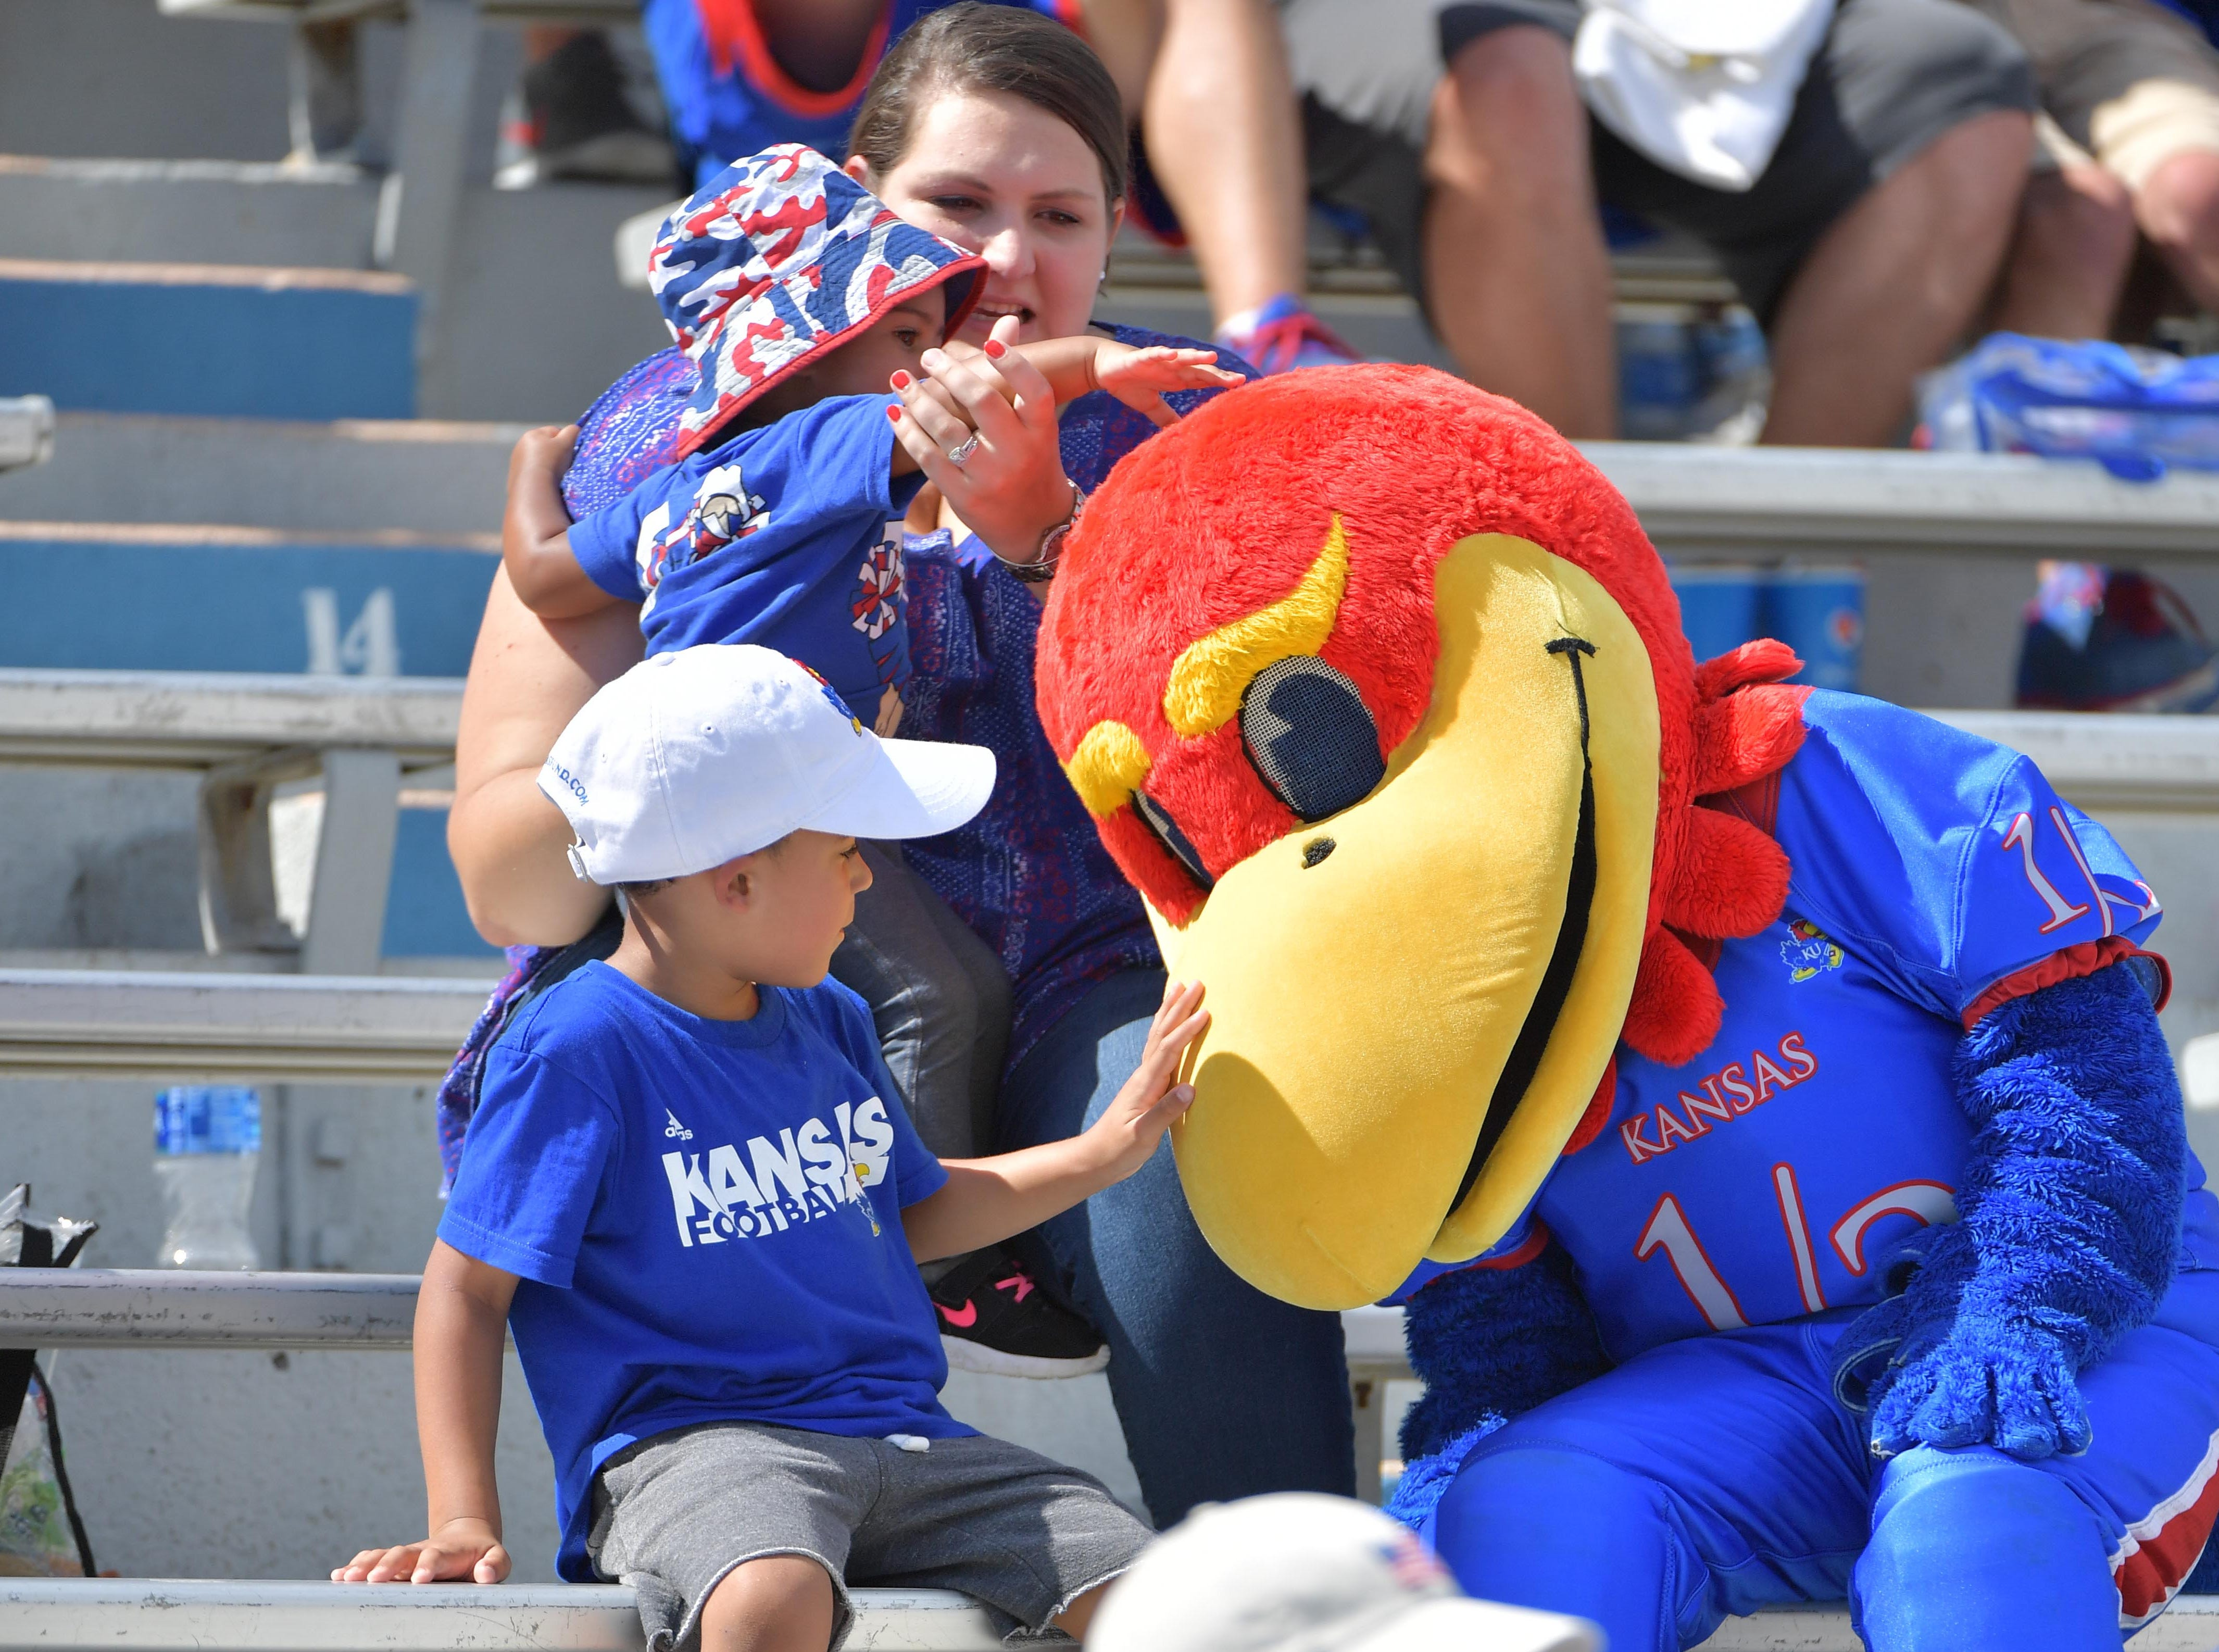 Week 3: Young Kansas Jayhawks fans pet the mascot during the second half against the Rutgers Scarlet Knights.